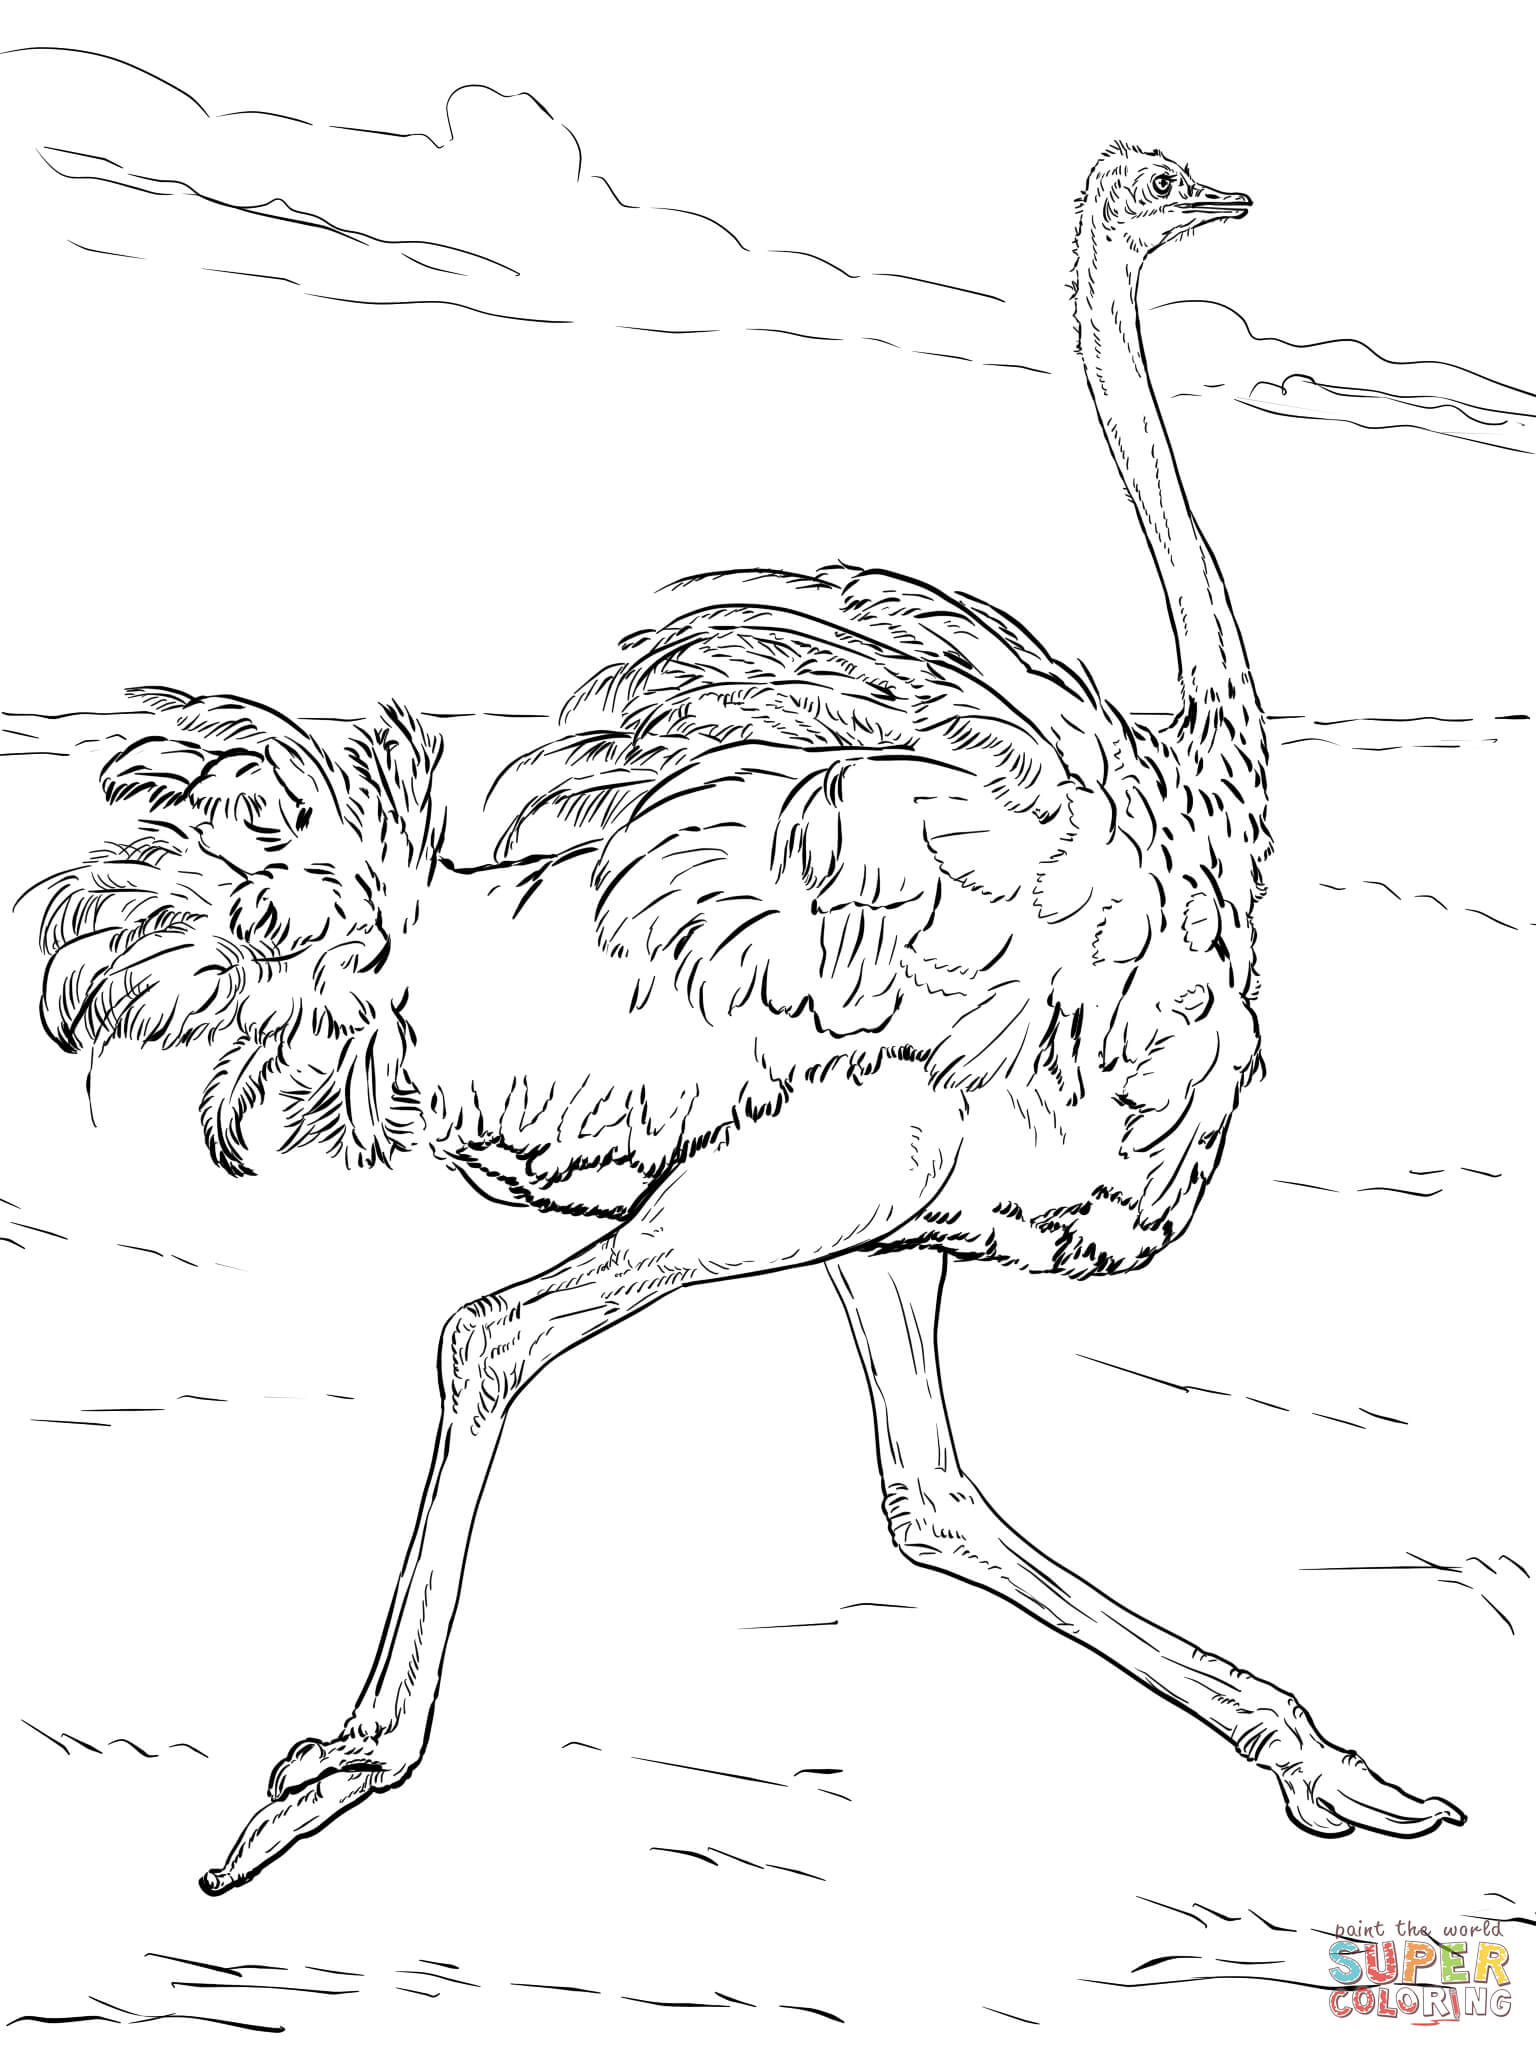 Desert Animals Coloring Pages At Getcolorings